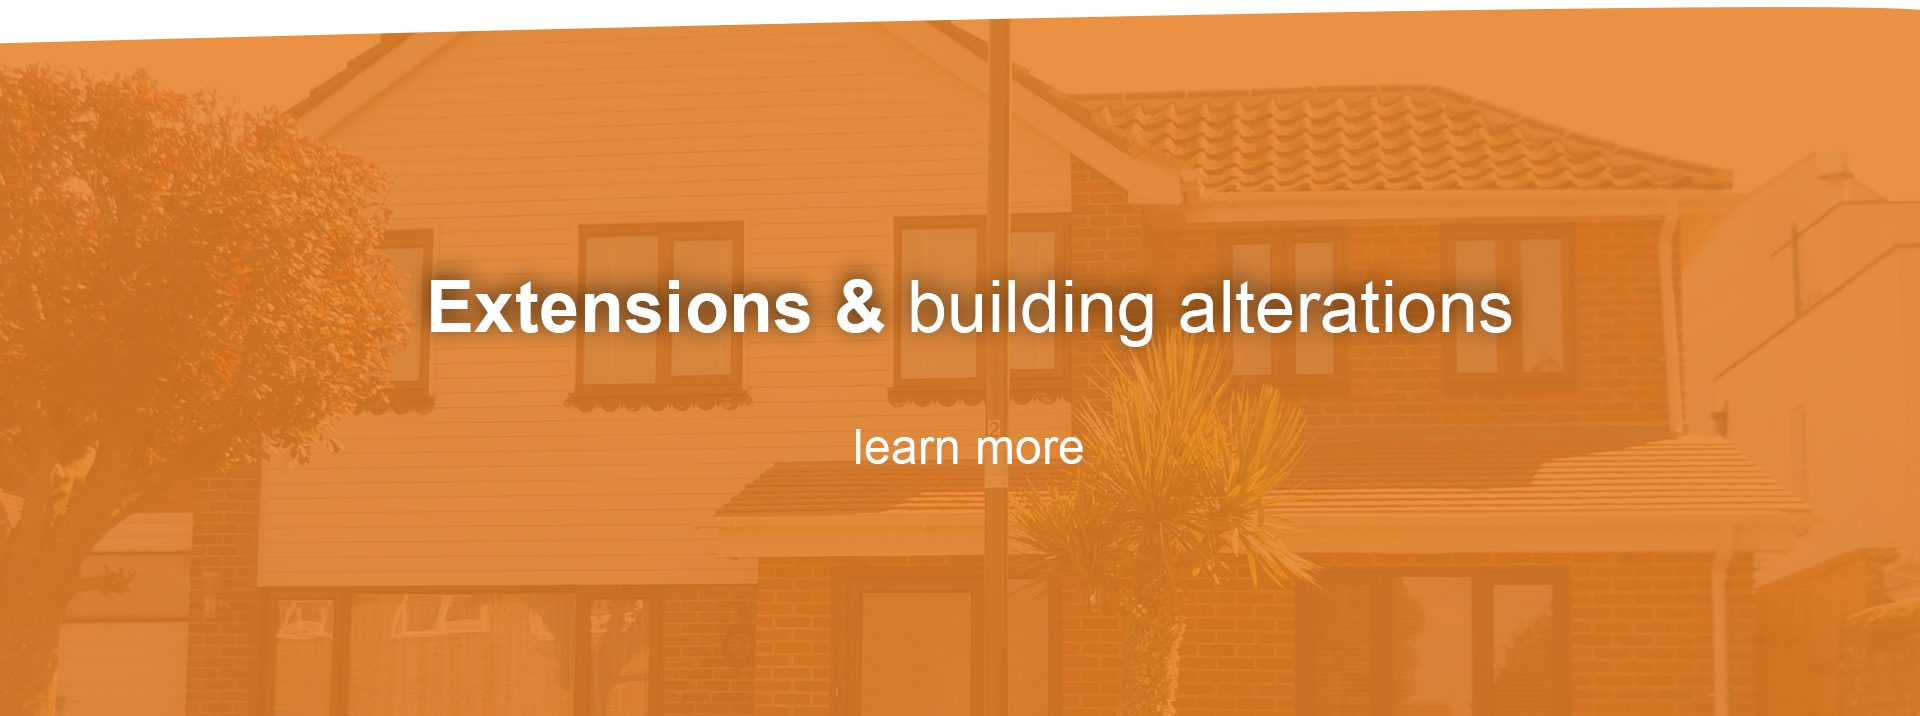 extensions-and-building-alterations-banner.jpg